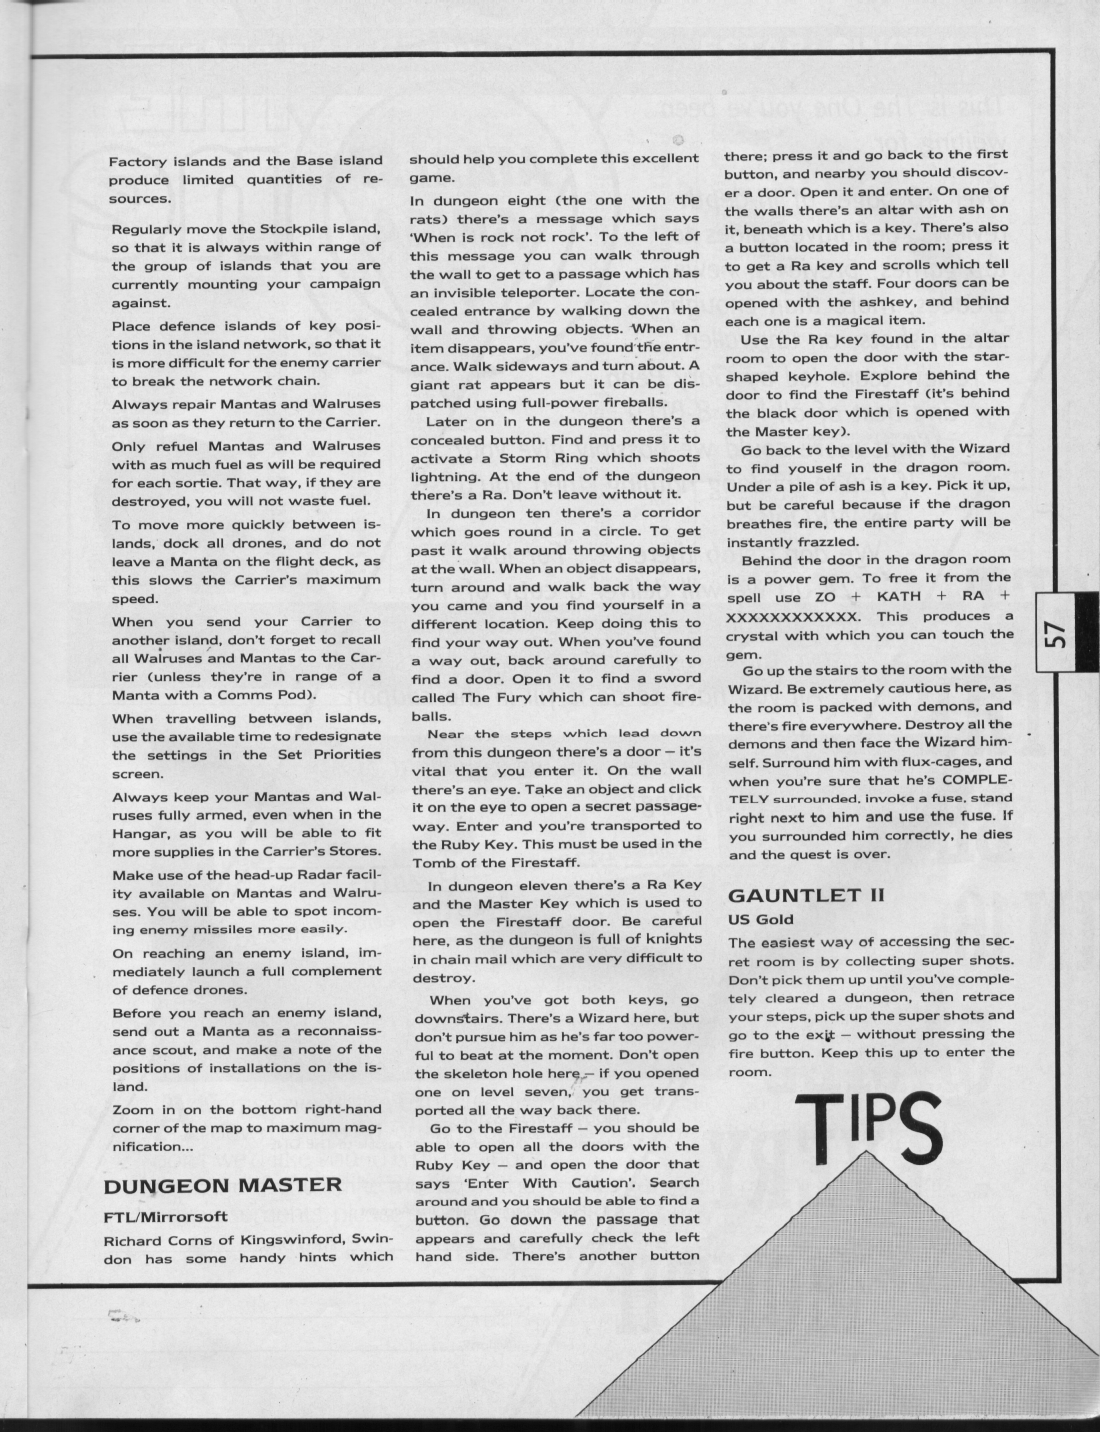 Dungeon Master Hints published in British magazine 'The One for 16-bits games', Issue #1 October 1988, Page 57